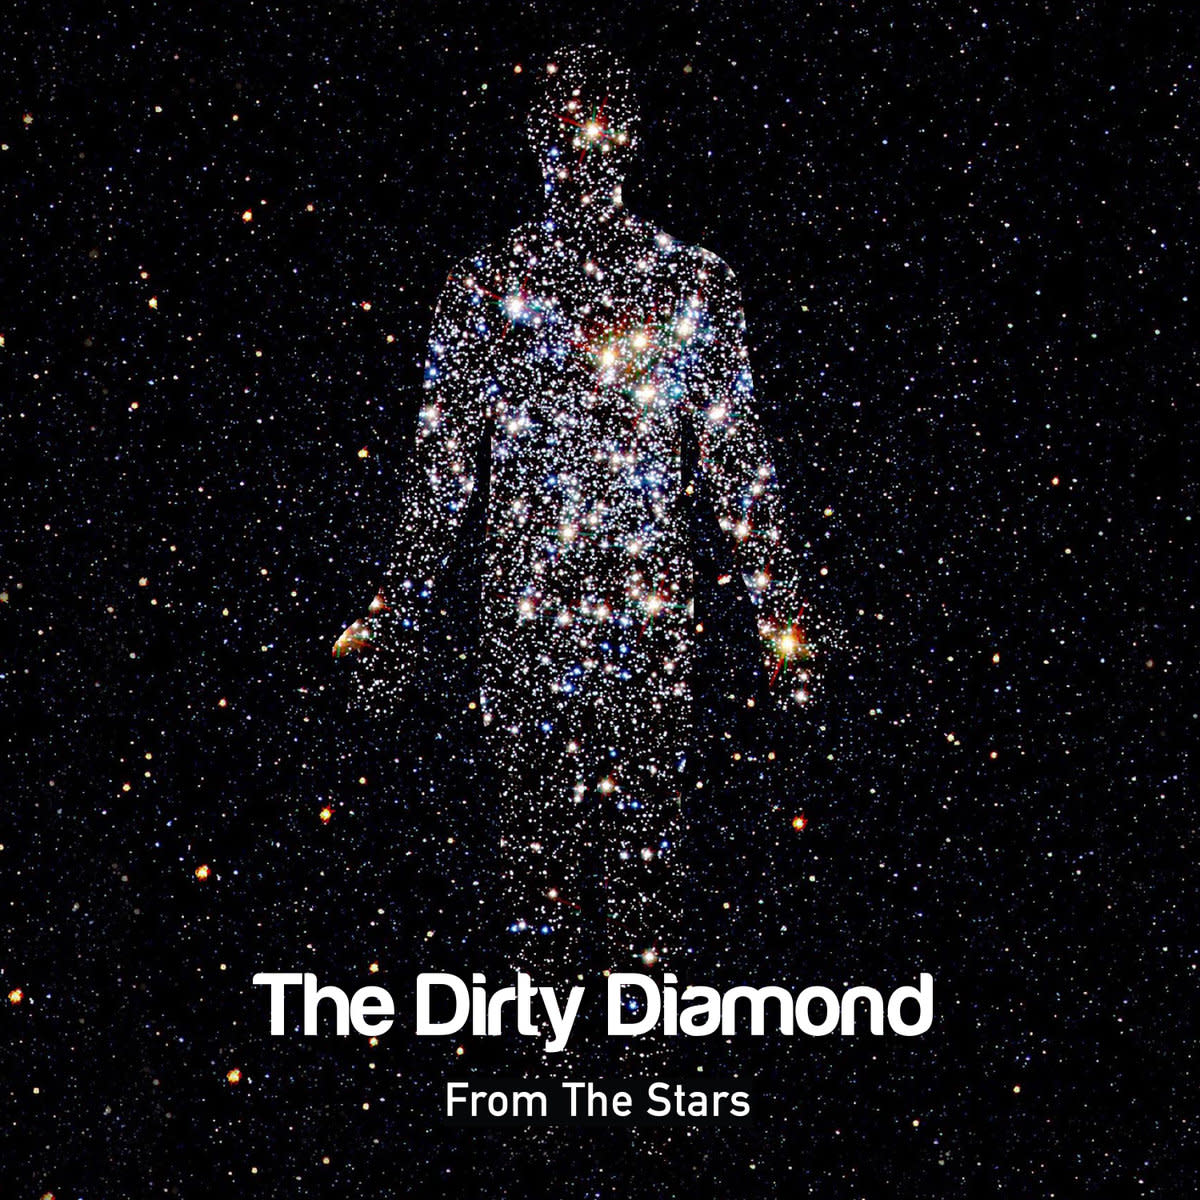 The Dirty Diamond Album